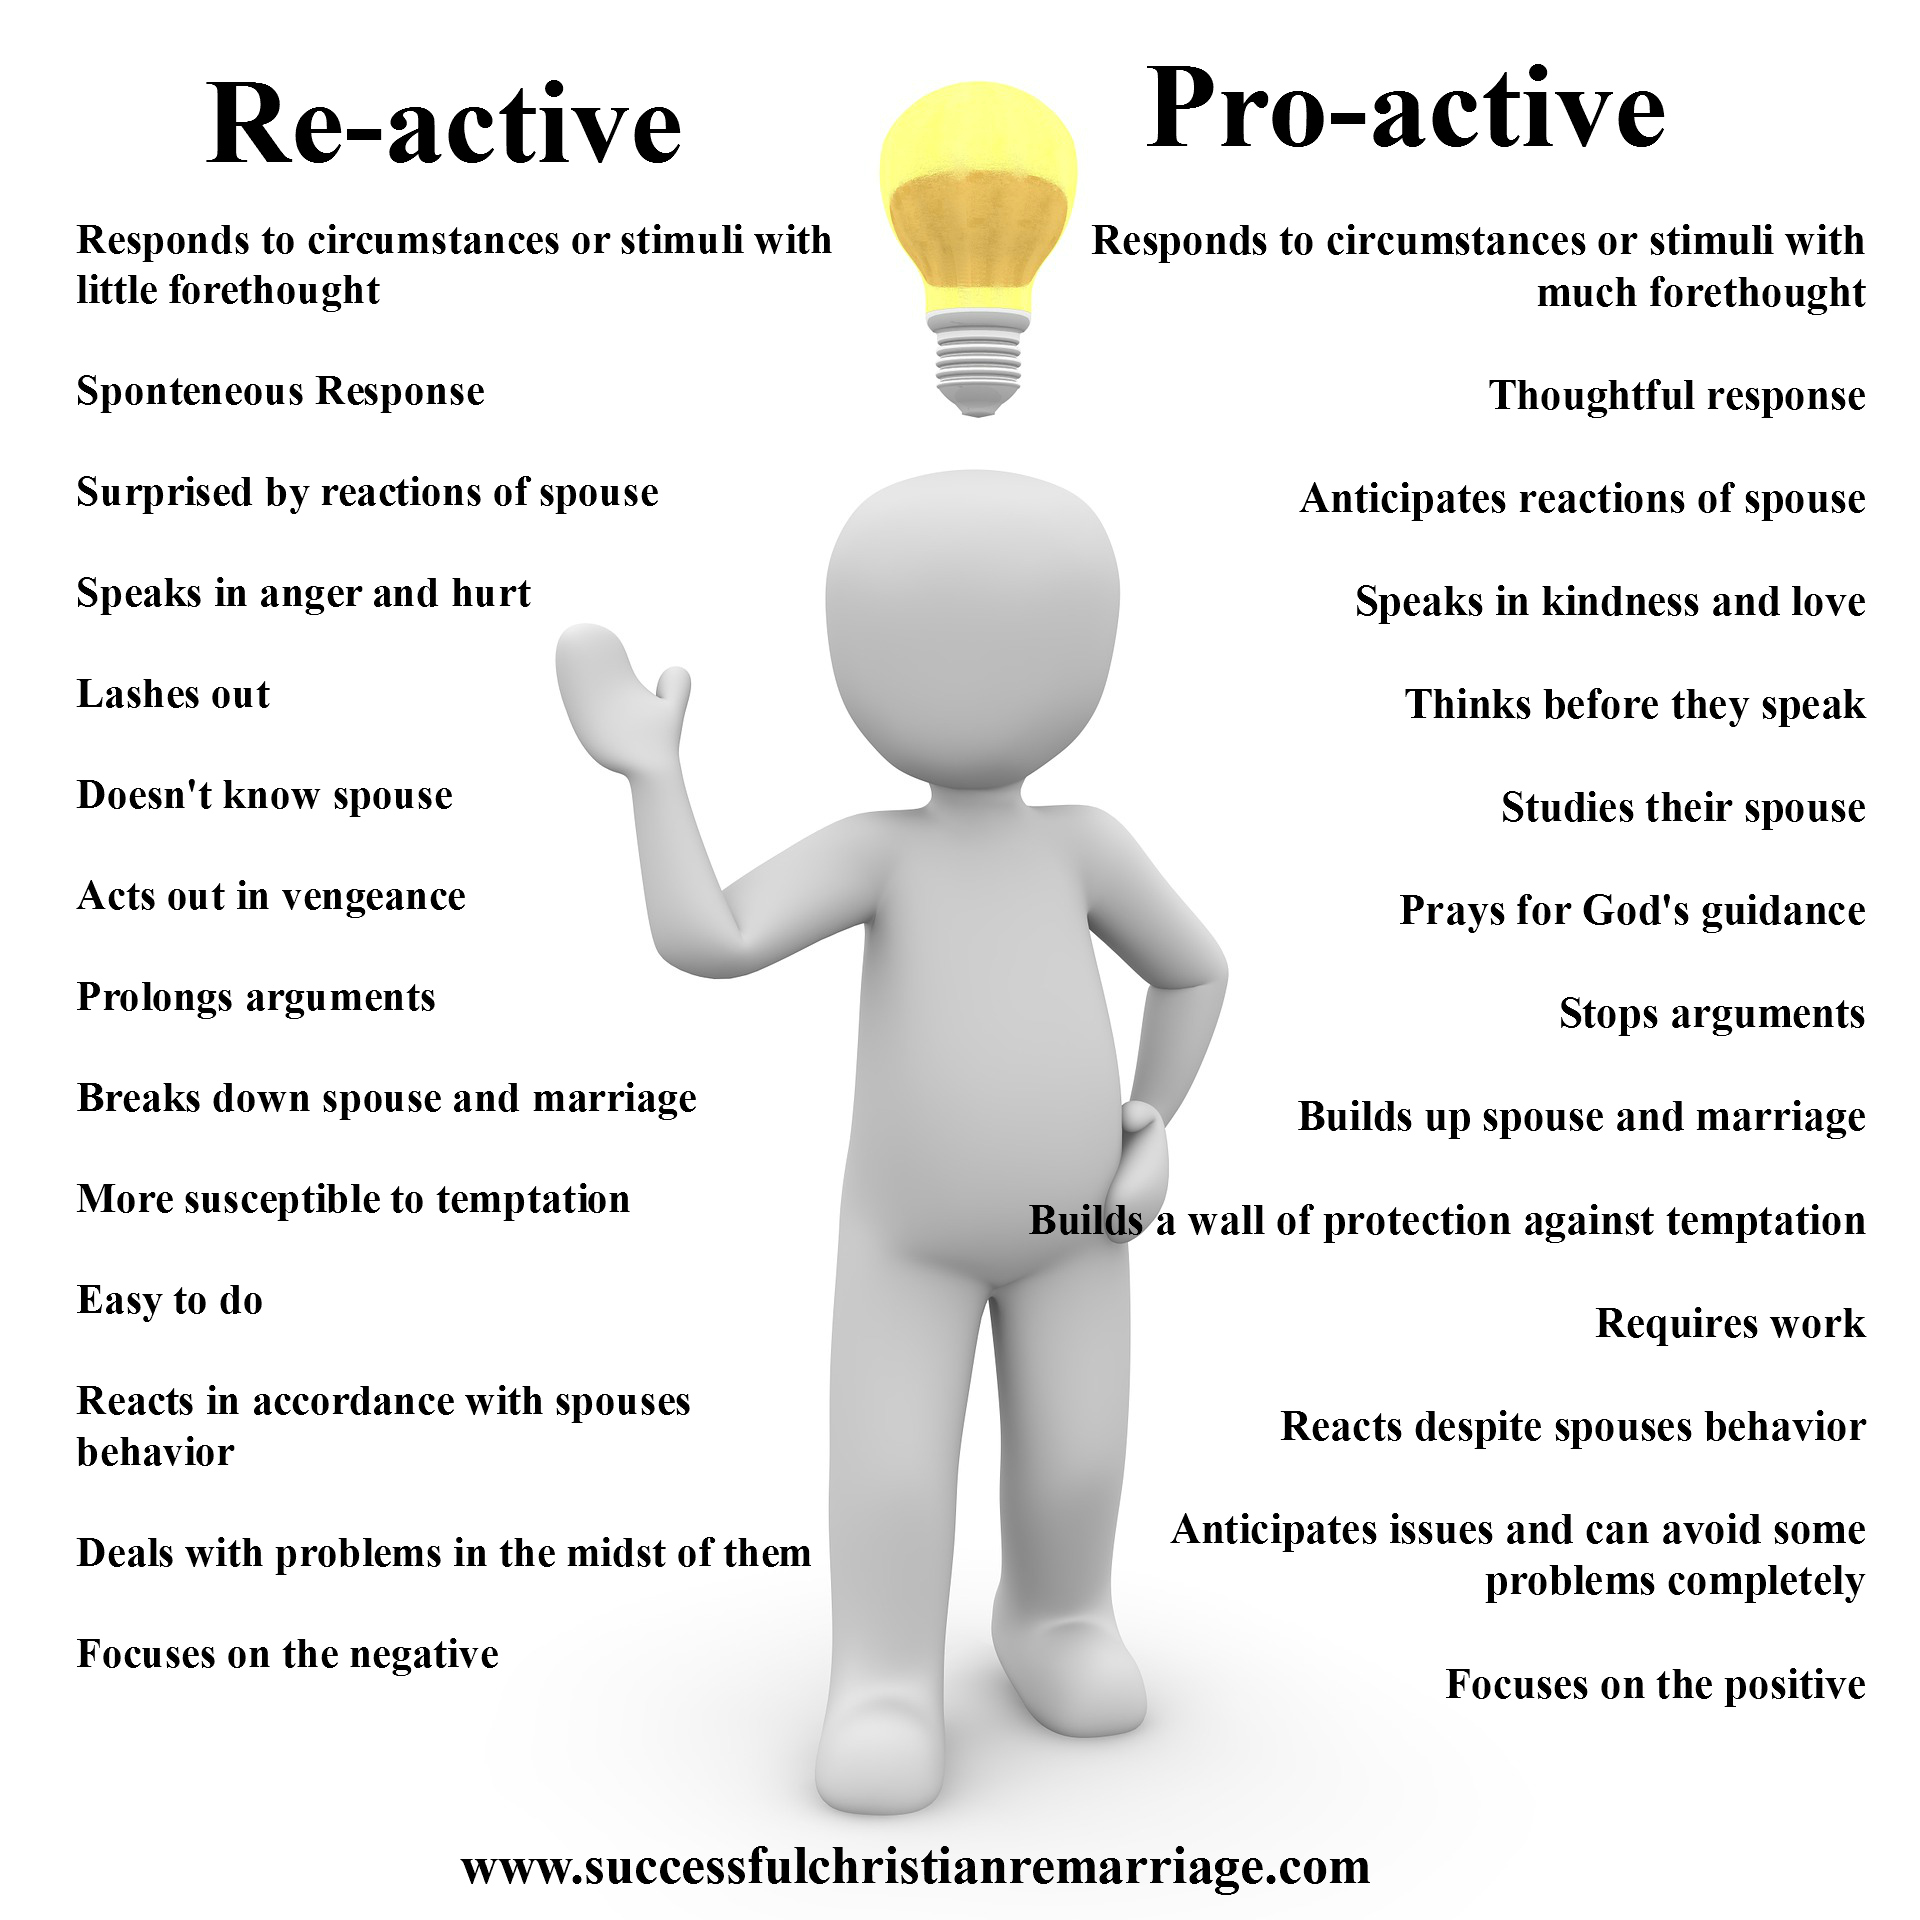 Re-active vs. Pro-active Marriage: www.successfulchristianremarriage.com